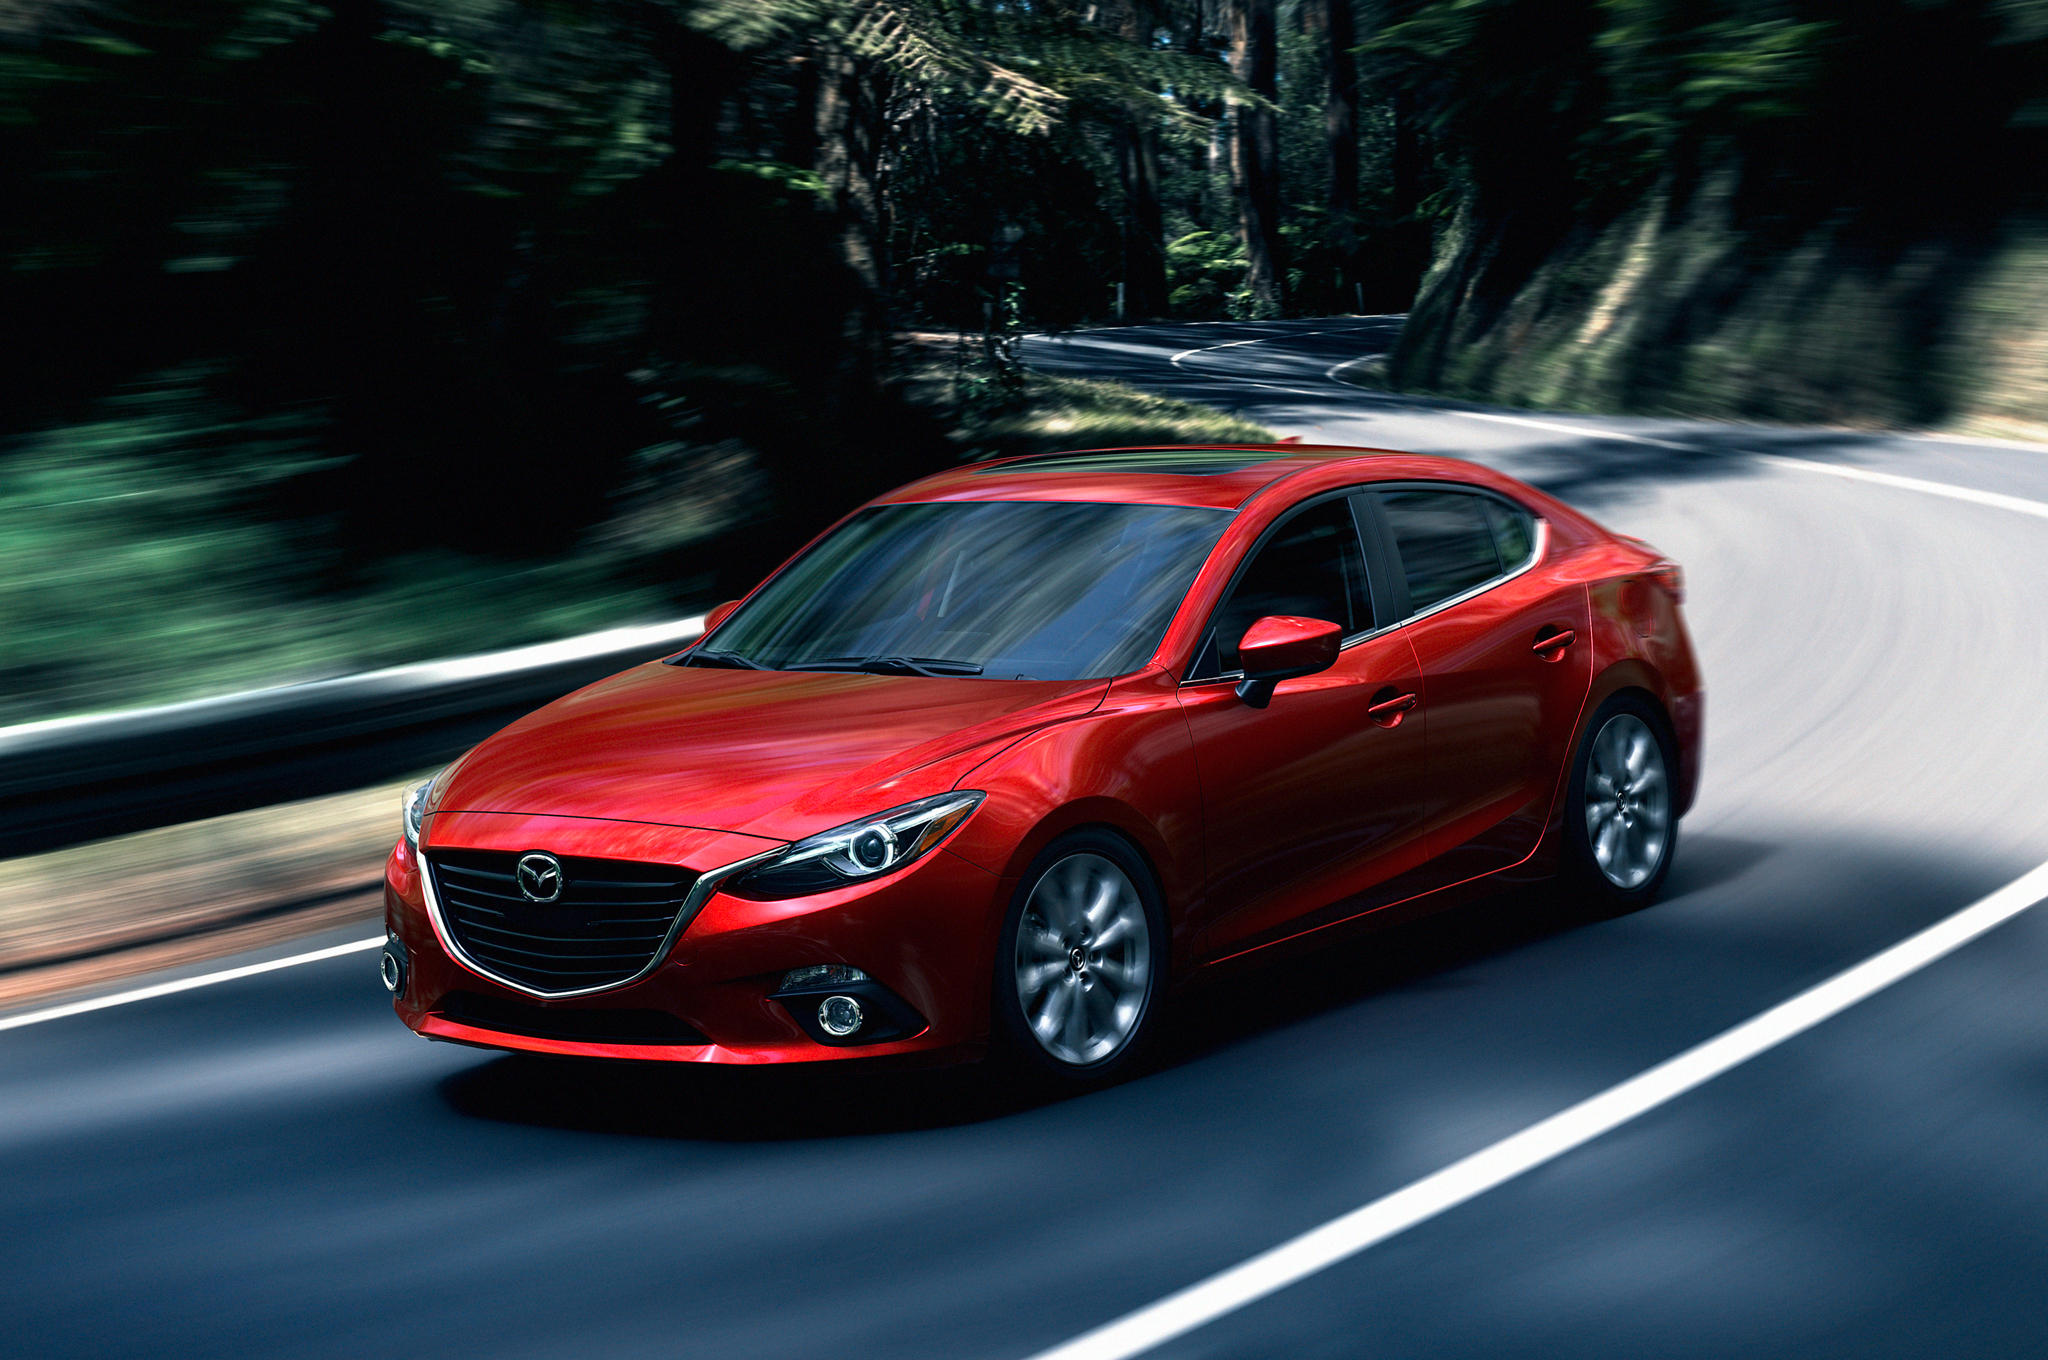 We Hear: Mazda to Reveal Mazdaspeed3 This Year With 300 HP and AWD